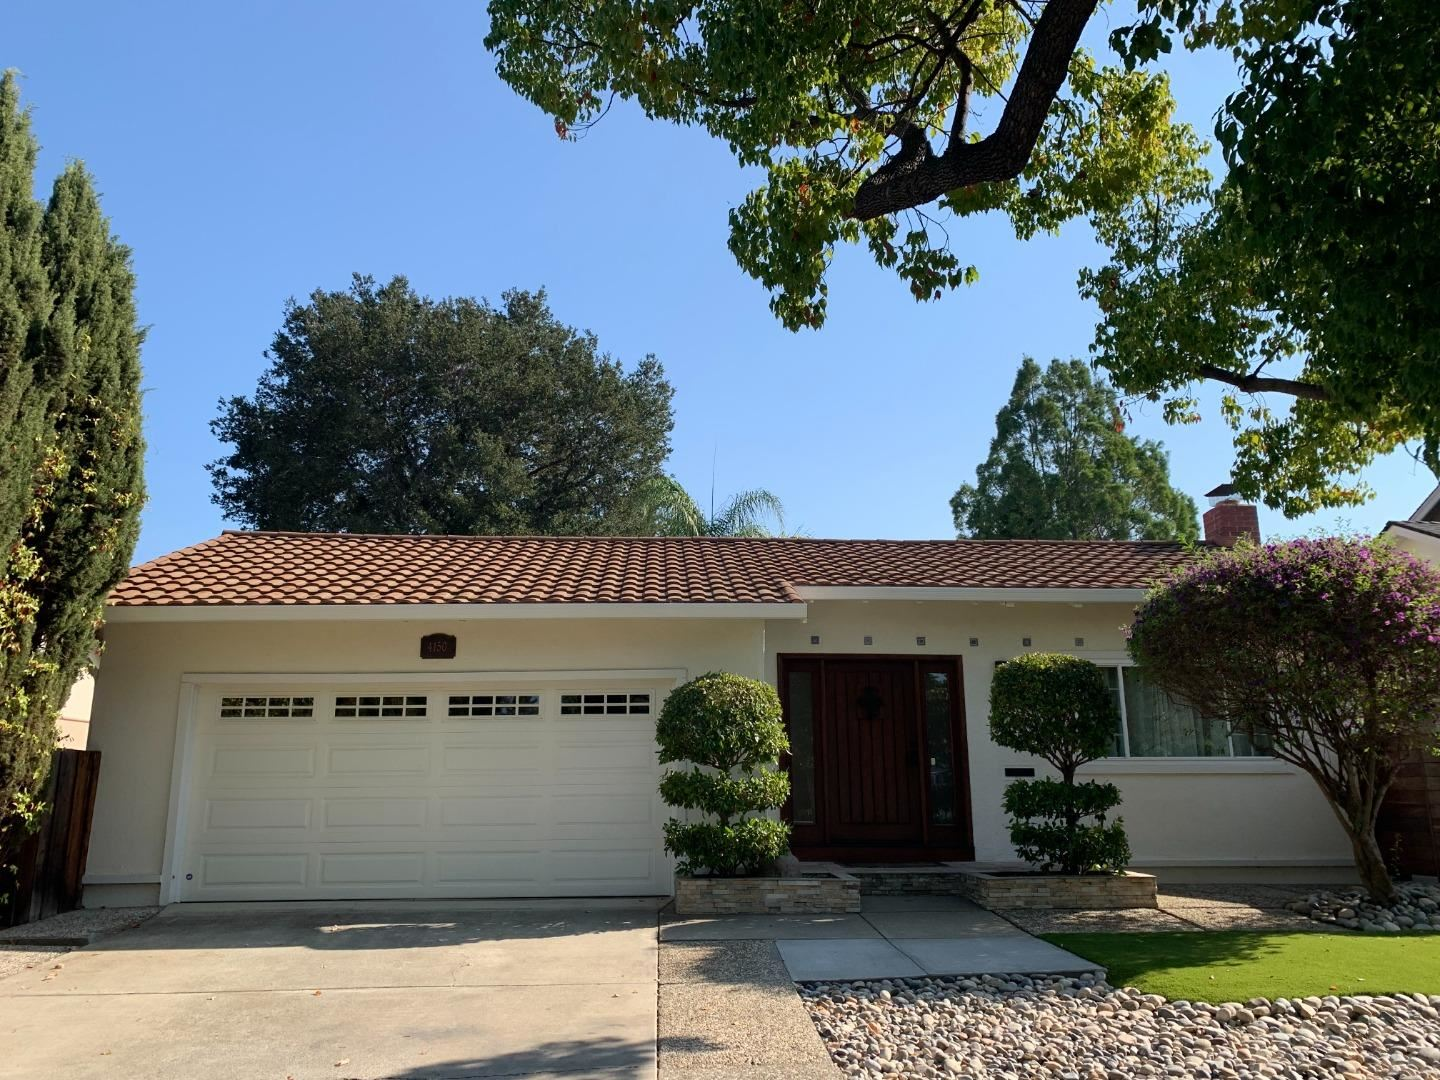 4150 Keith Drive, Campbell, CA 95008 - MLS#: ML81862910